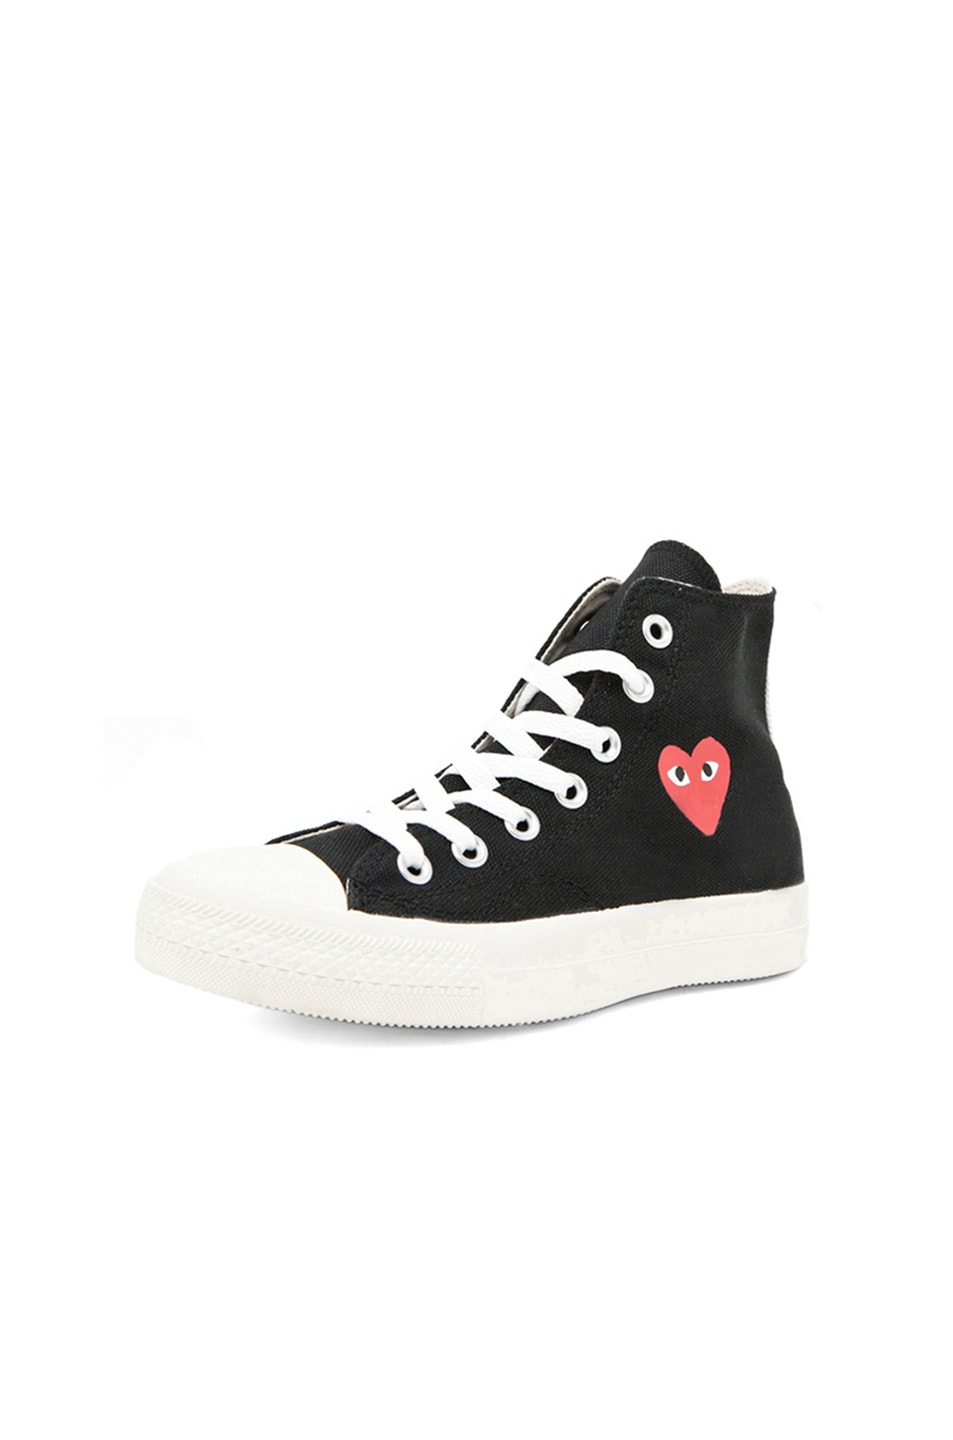 cdg play converse high